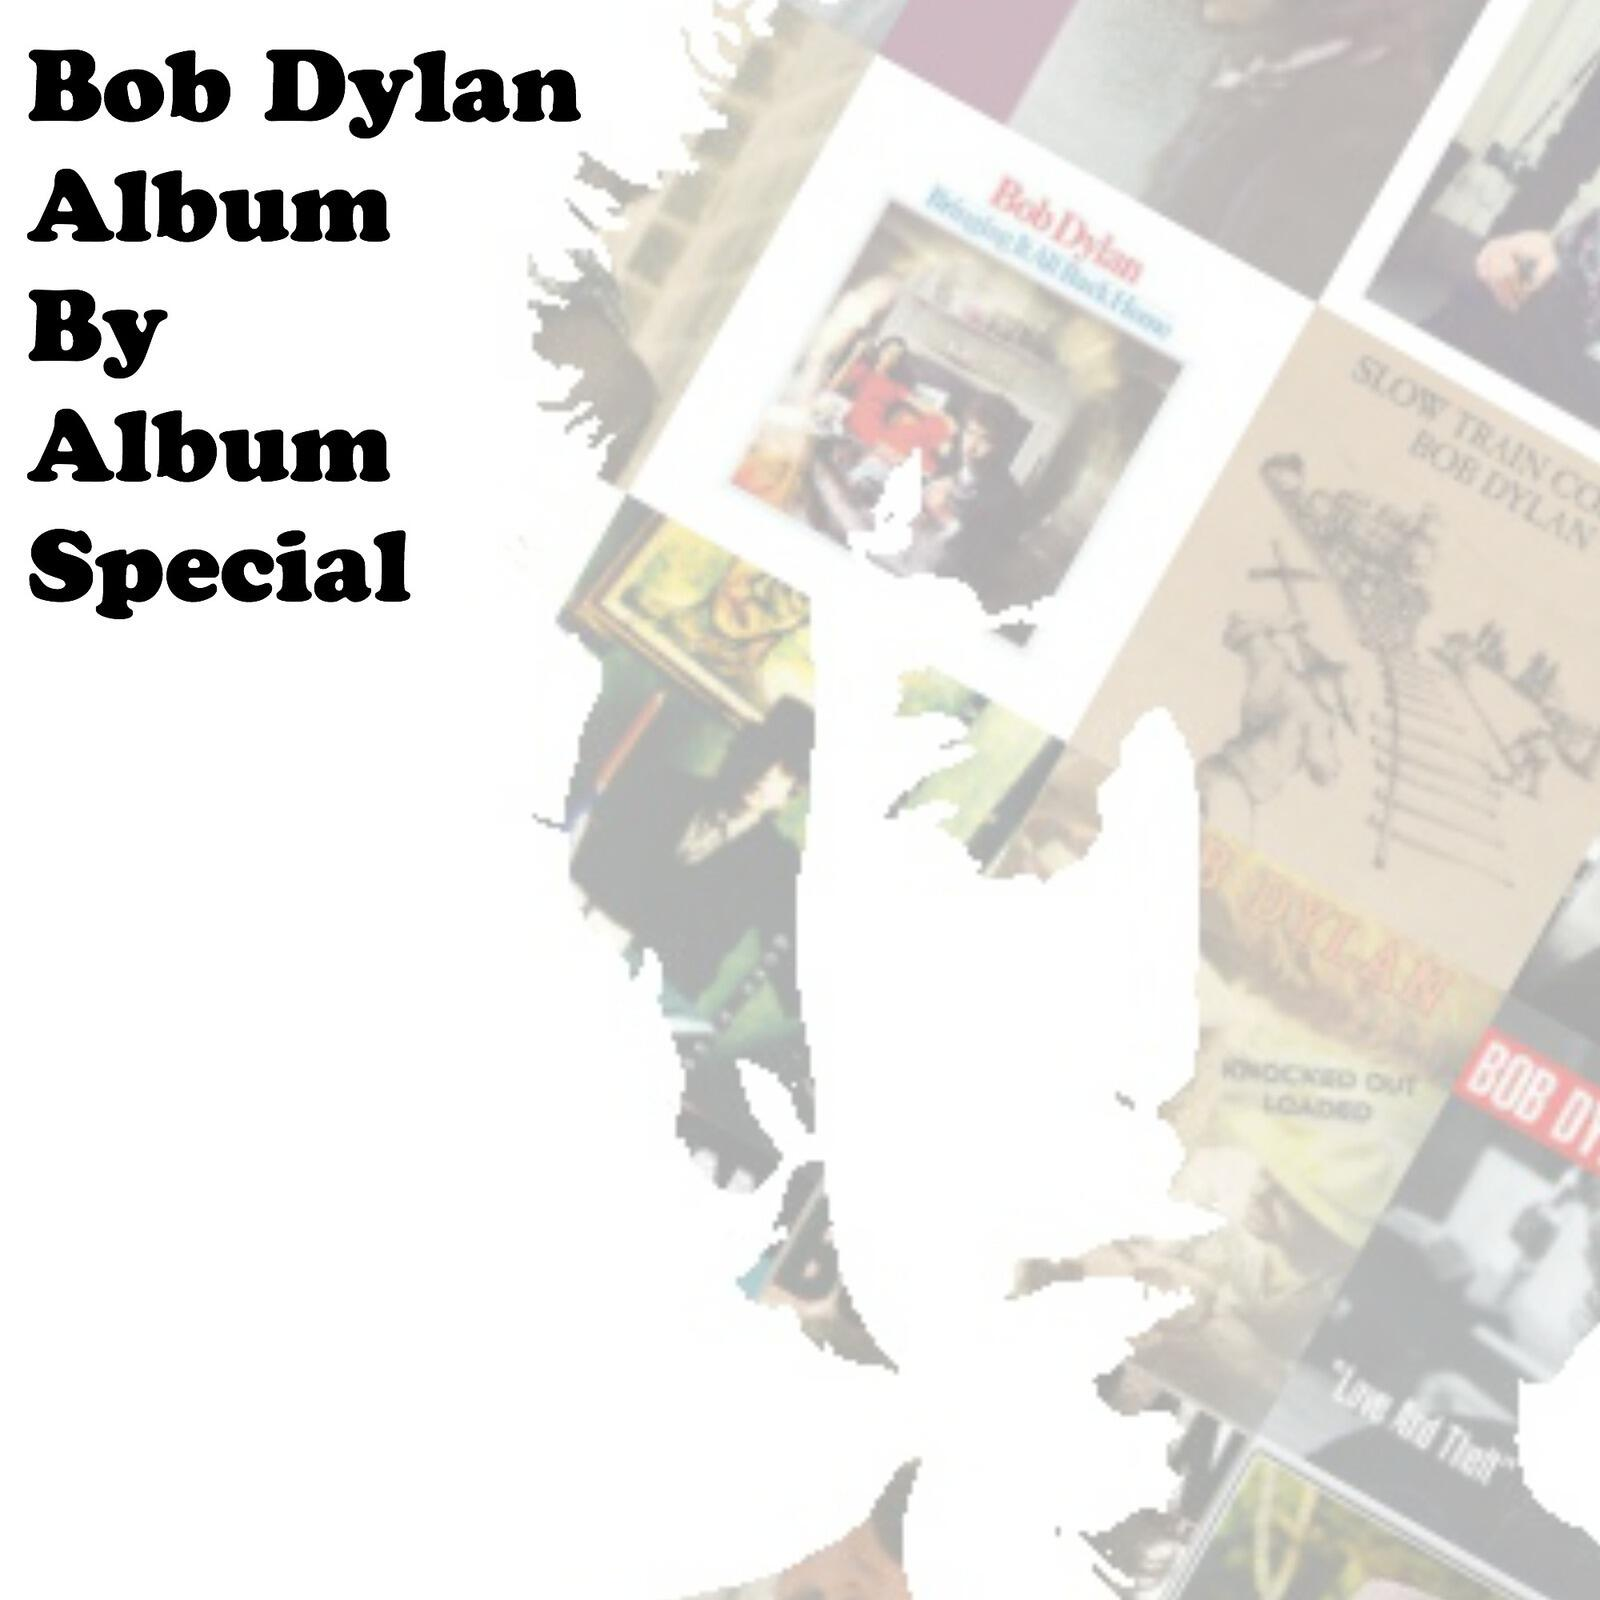 Special: Is Bob Dylan's musical diversity overlooked compared to his lyrics?